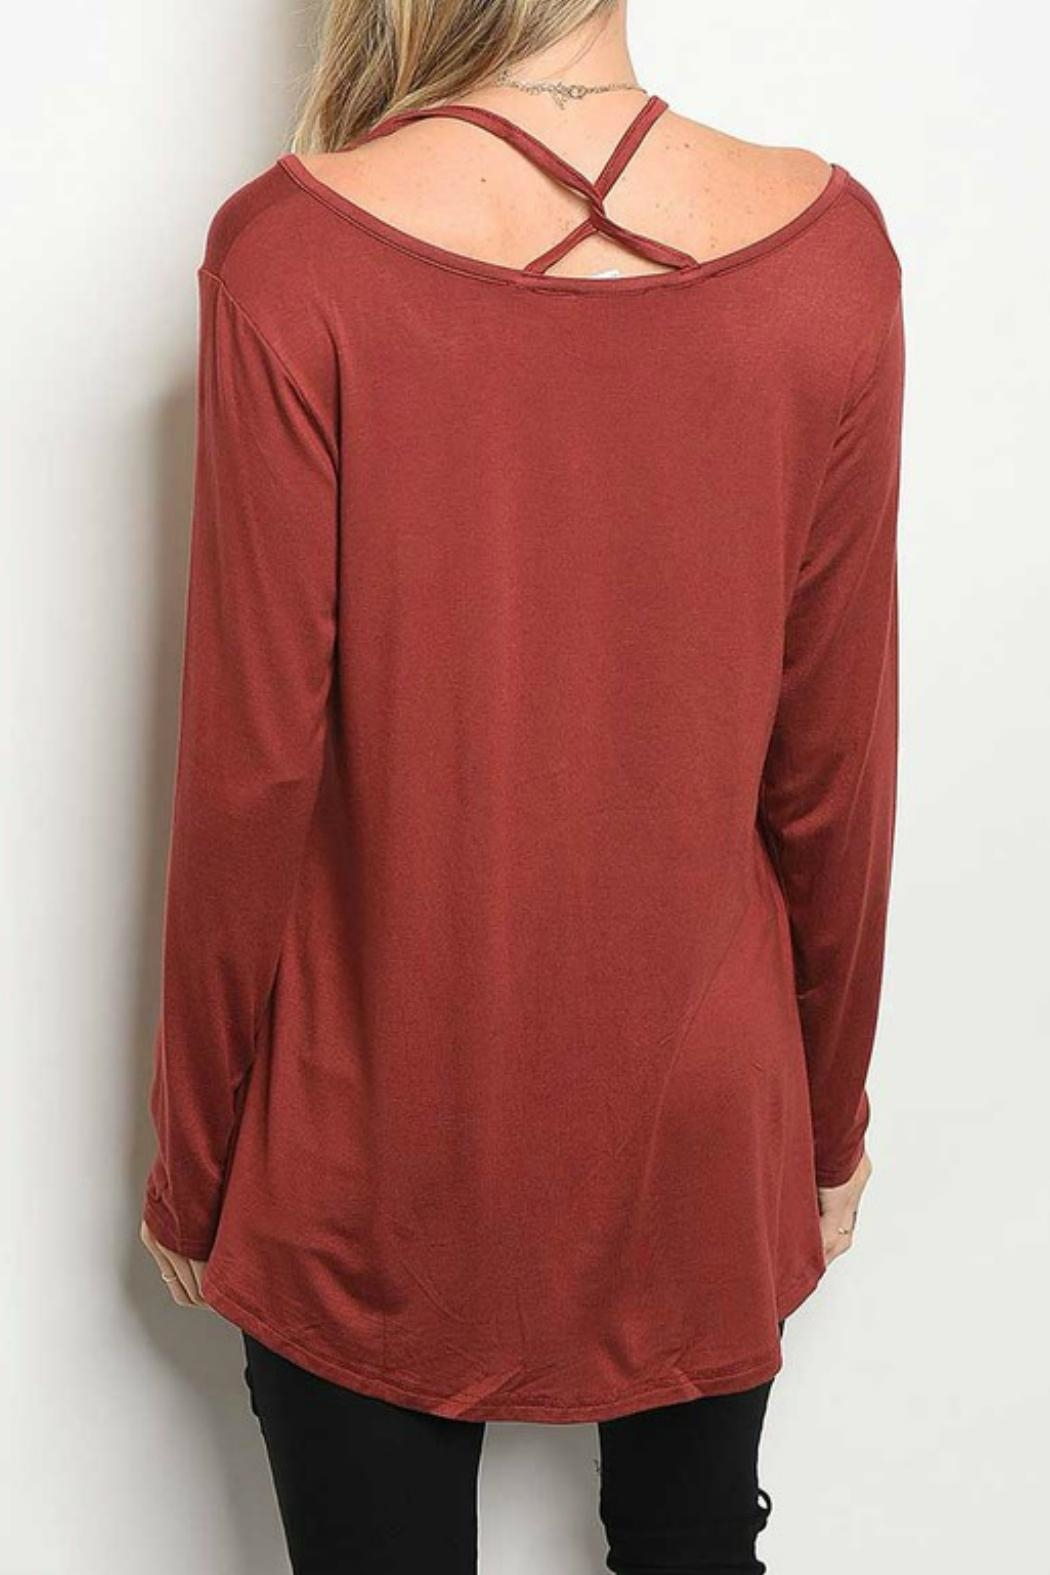 LoveRiche Strappy Detail Top - Front Full Image